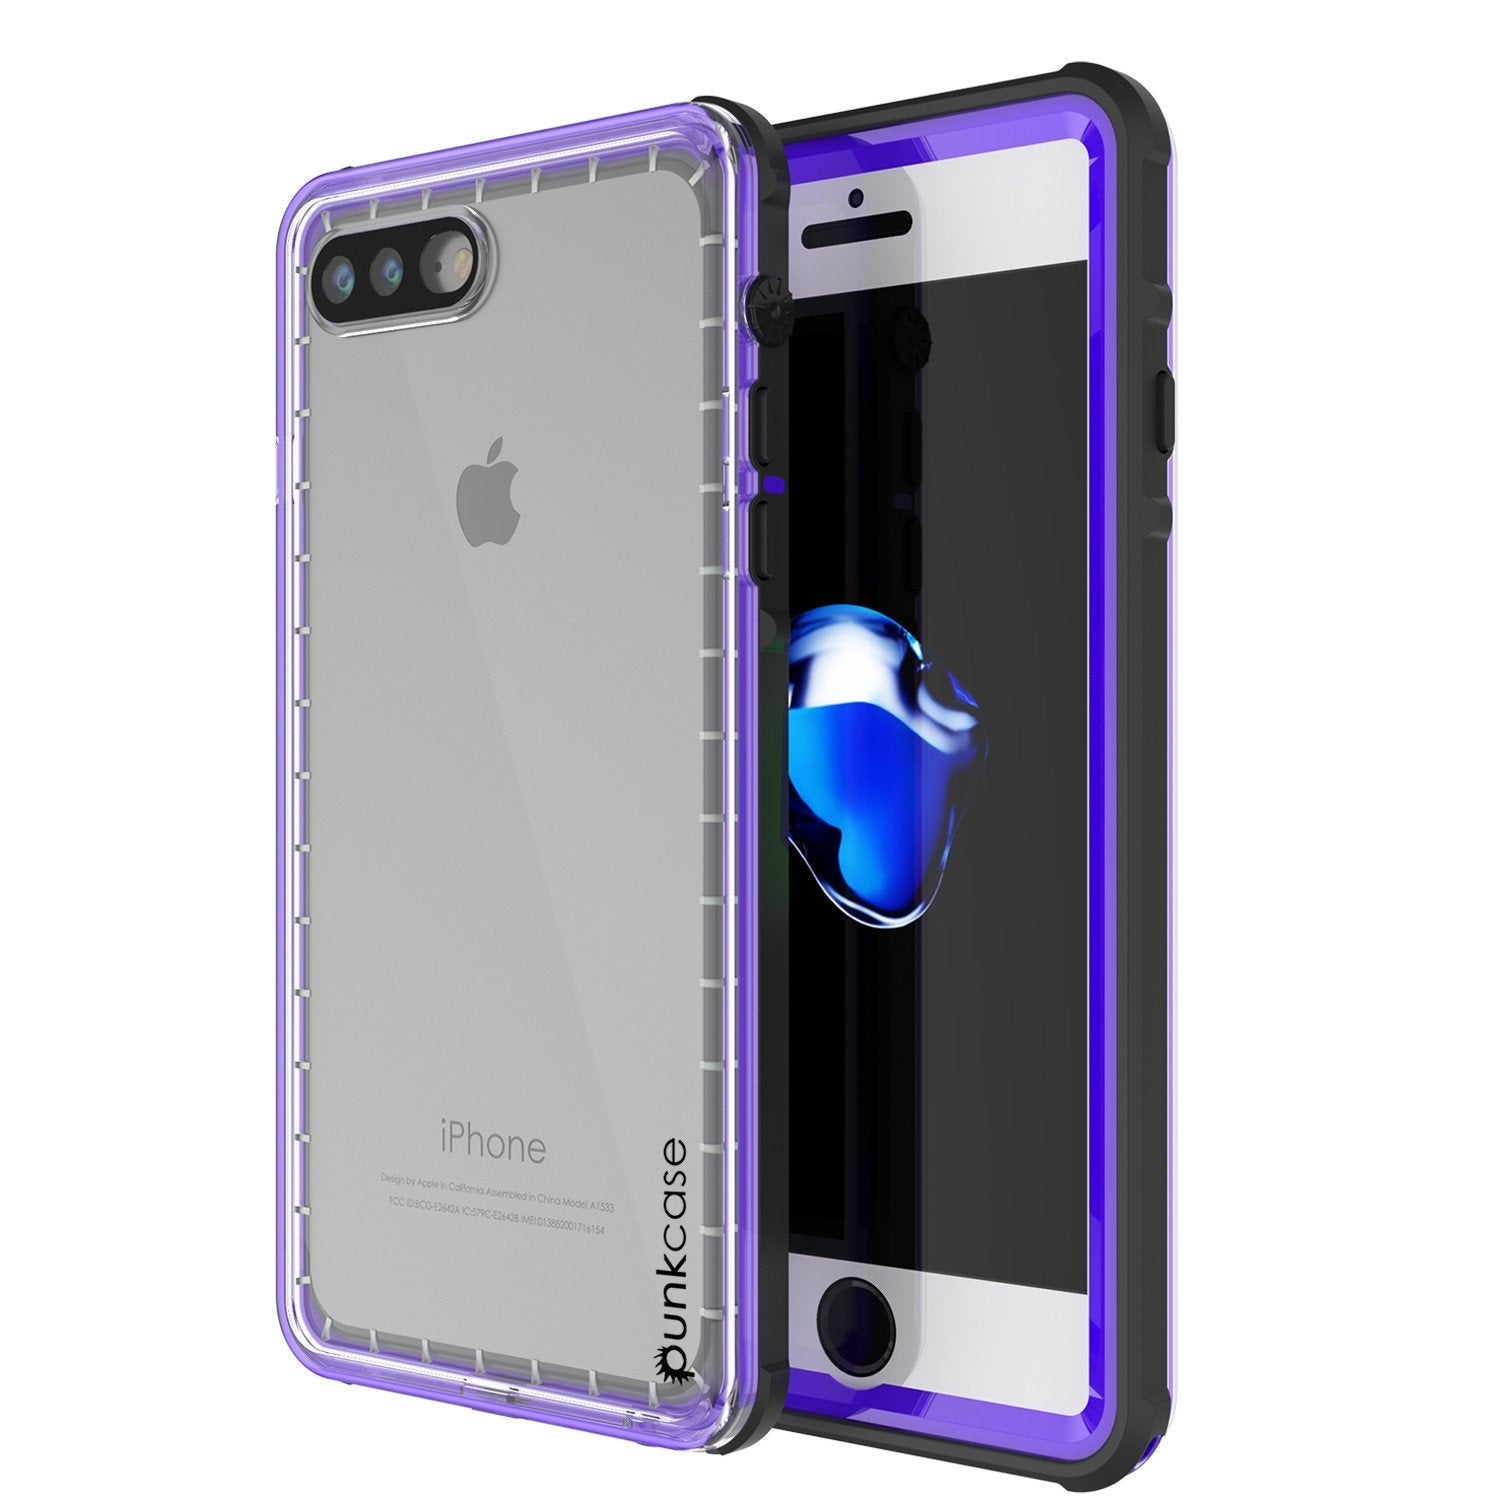 new style 16dc8 bca20 iPhone 8+ Plus Waterproof Case, PUNKcase CRYSTAL Purple W/ Attached Screen  Protector | Warranty